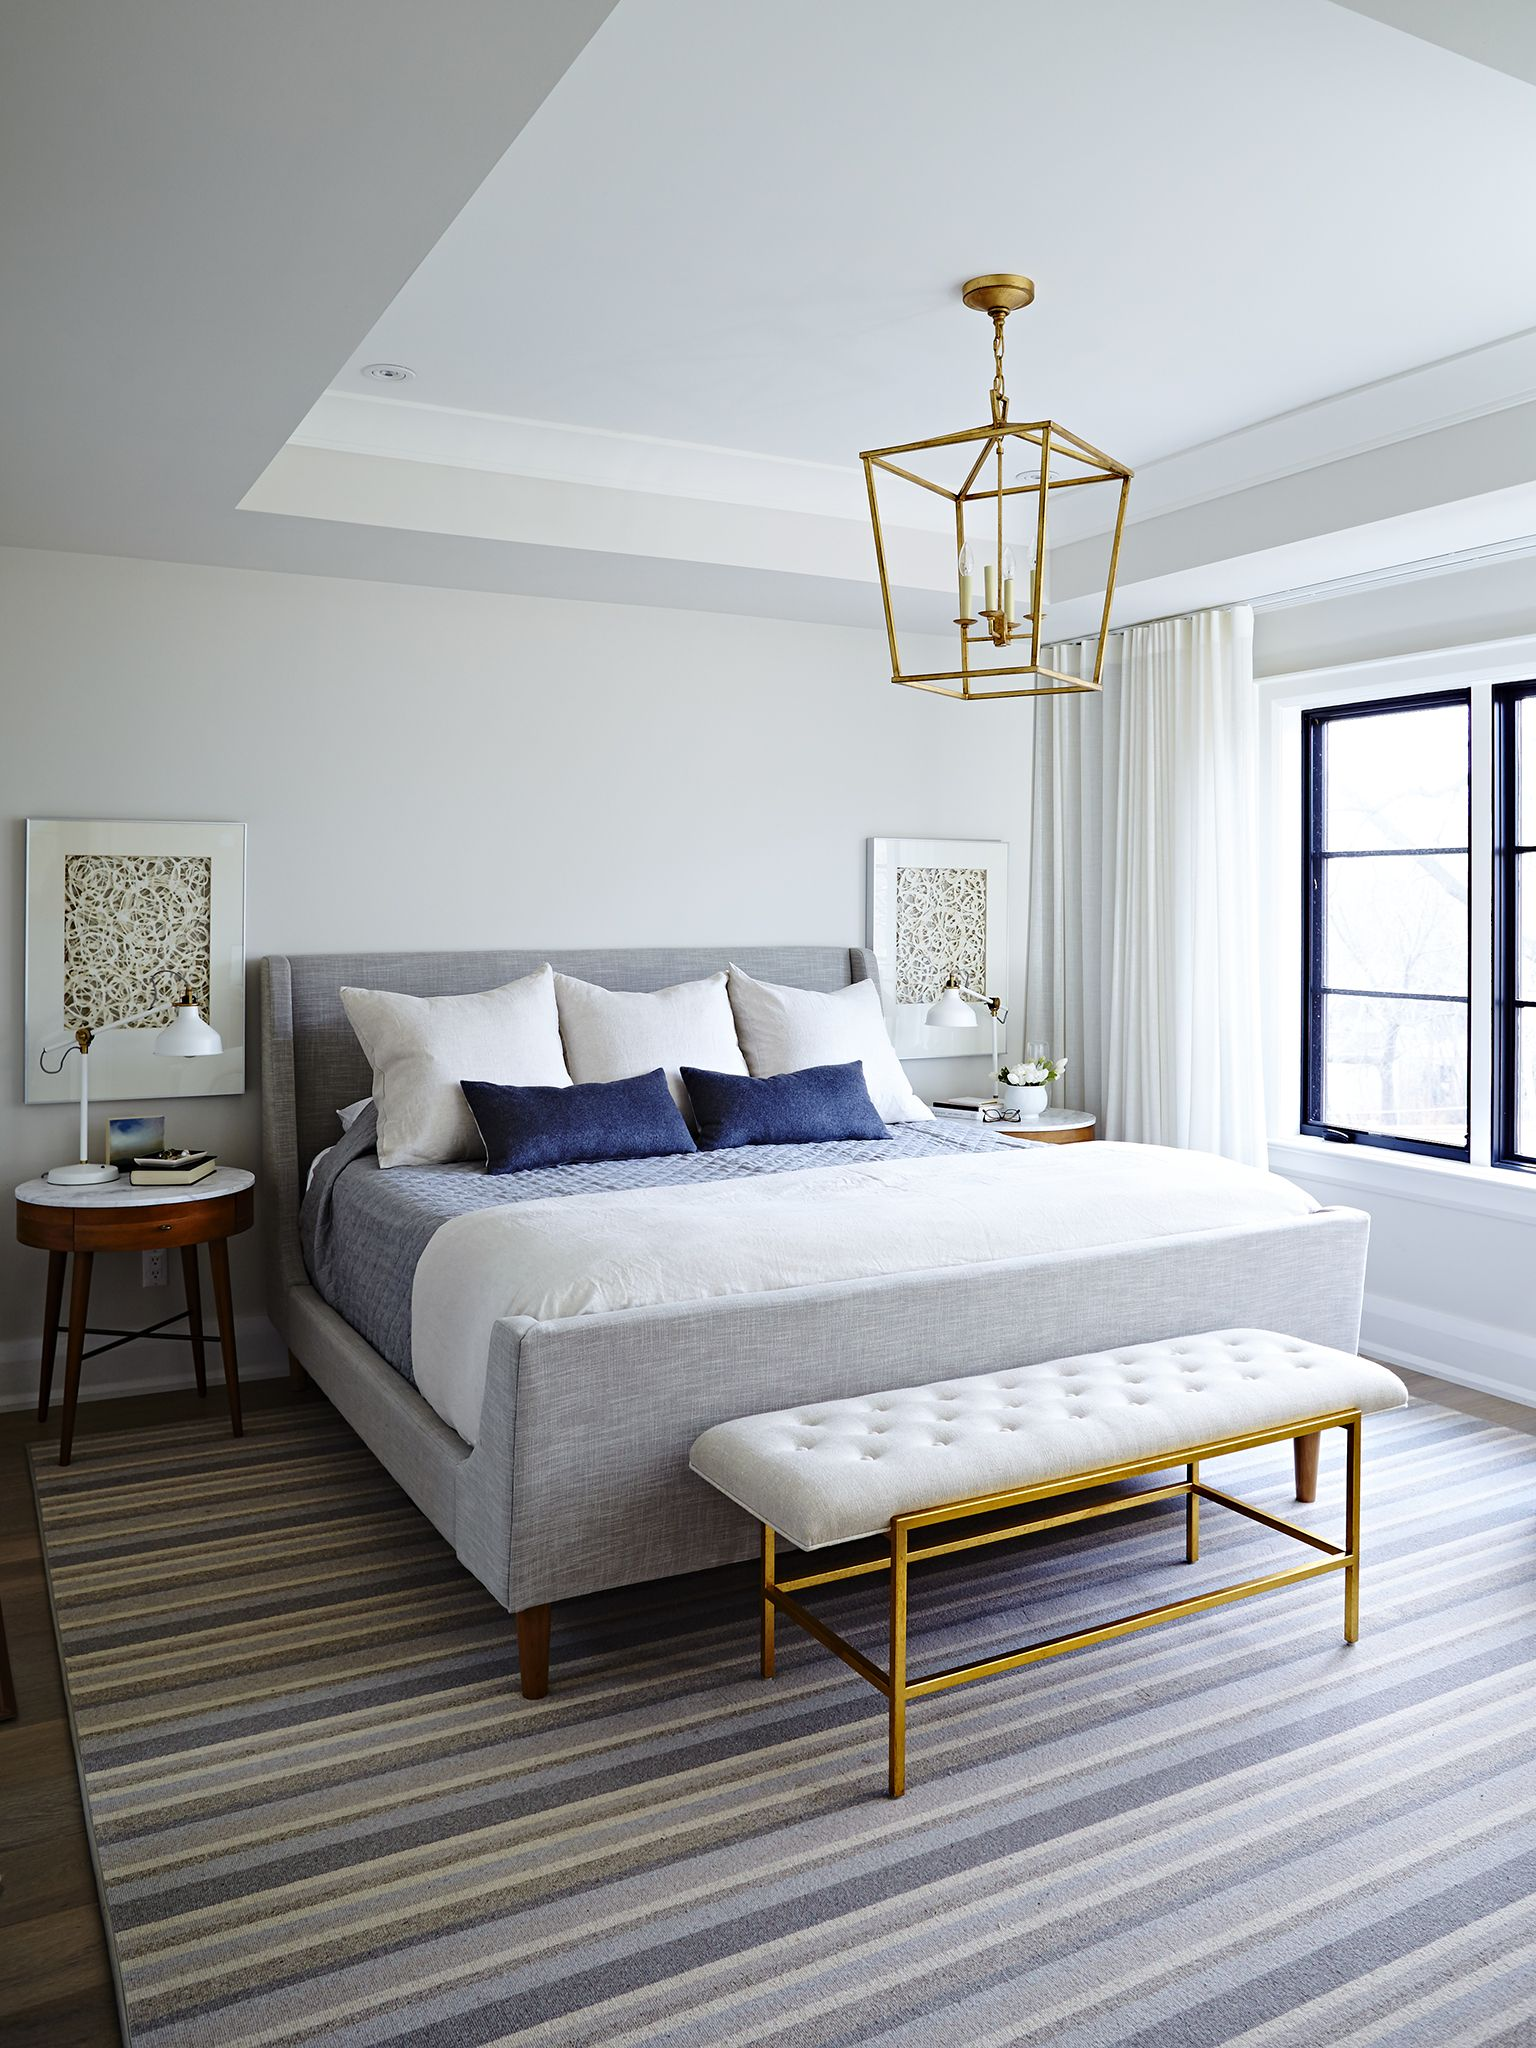 Master bedroom with lofted ceiling and gold accent hanging light ...